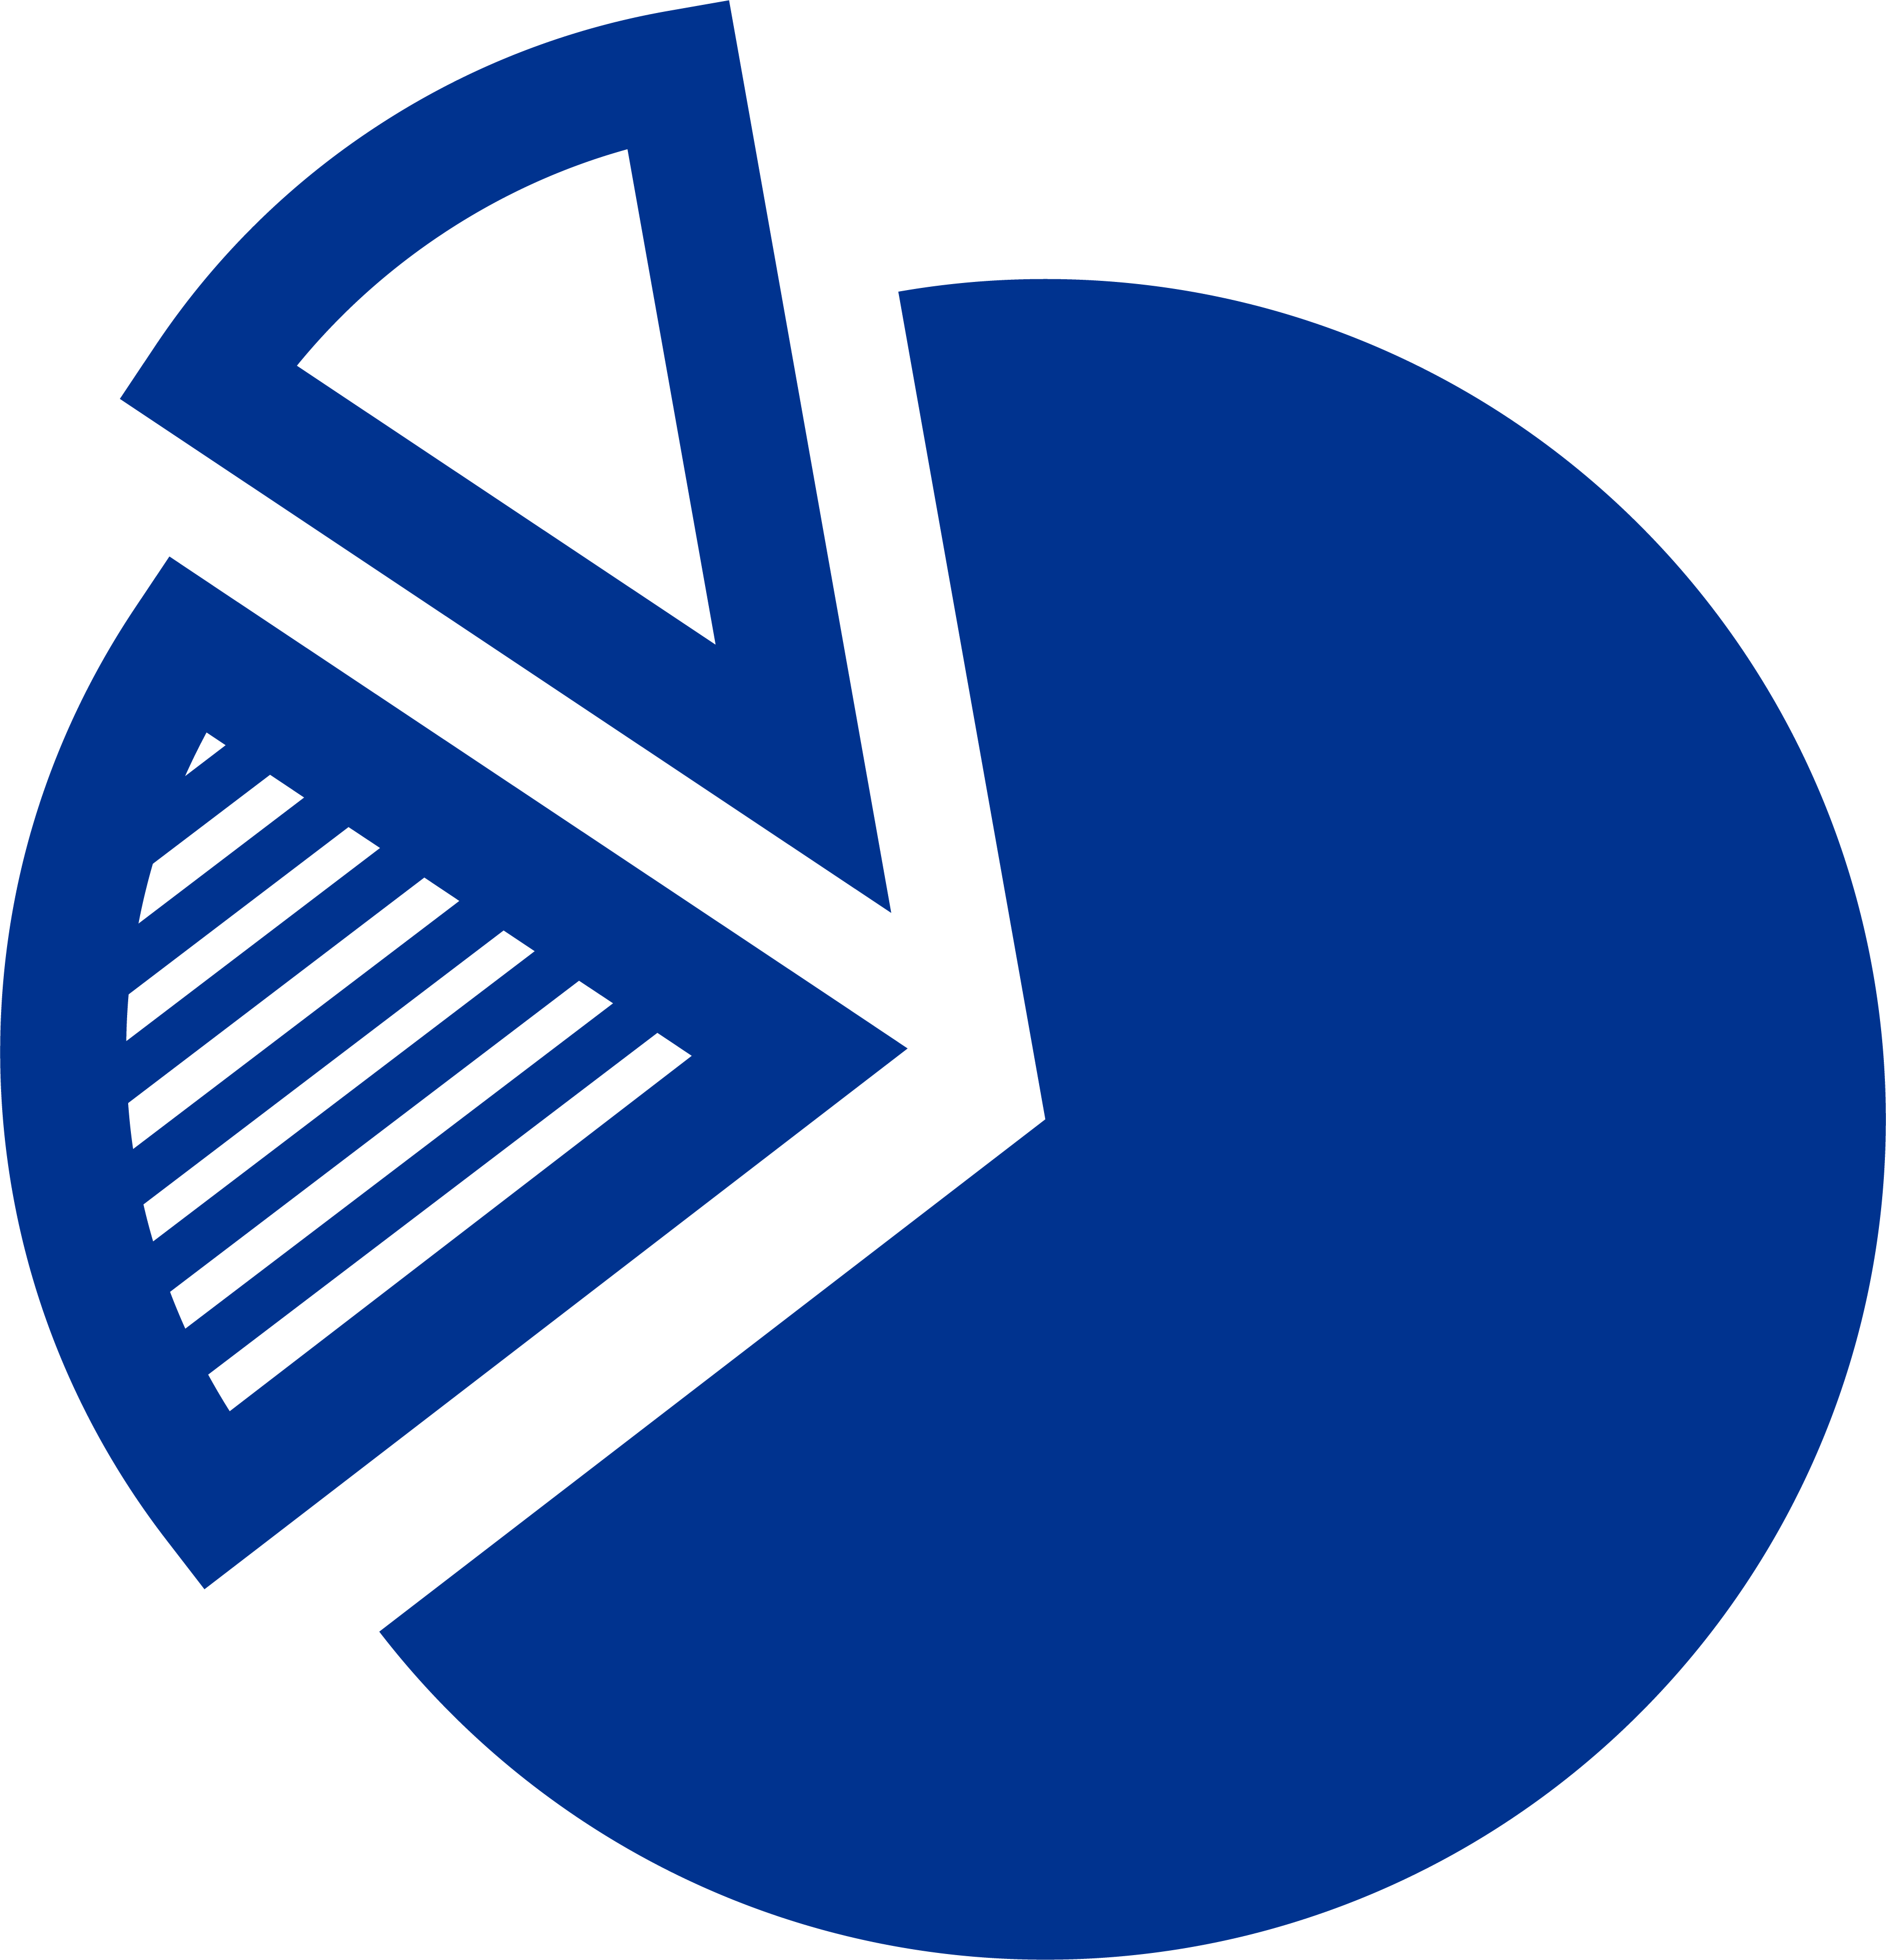 blue icon pie chart with two separated wedges